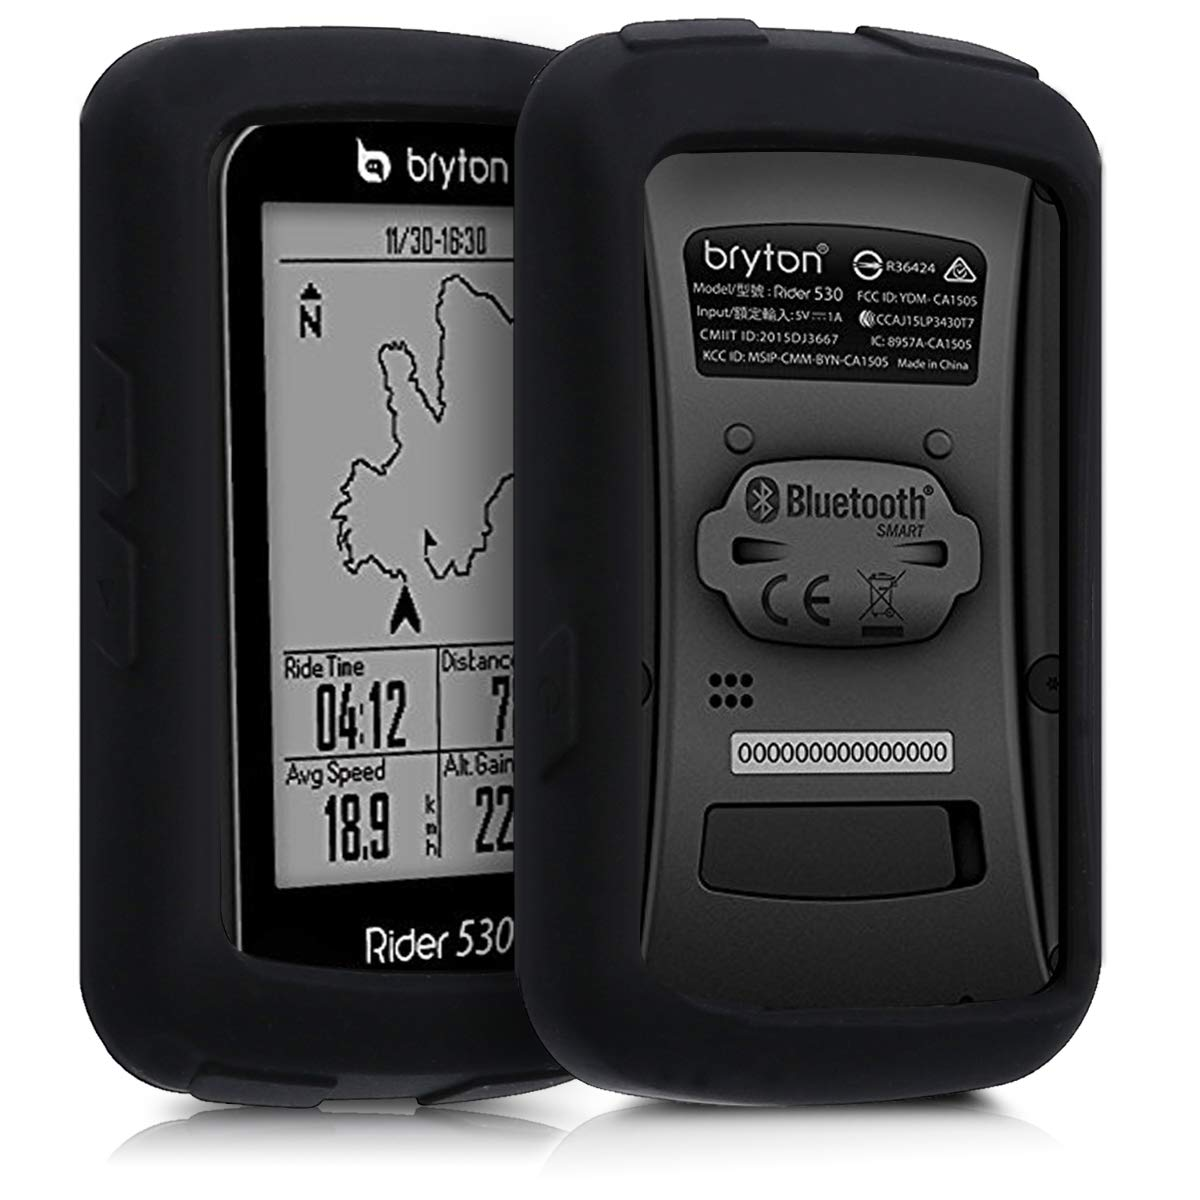 kwmobile Case for Bryton Rider 530 - Soft Silicone Bike GPS Navigation System Protective Cover - Black